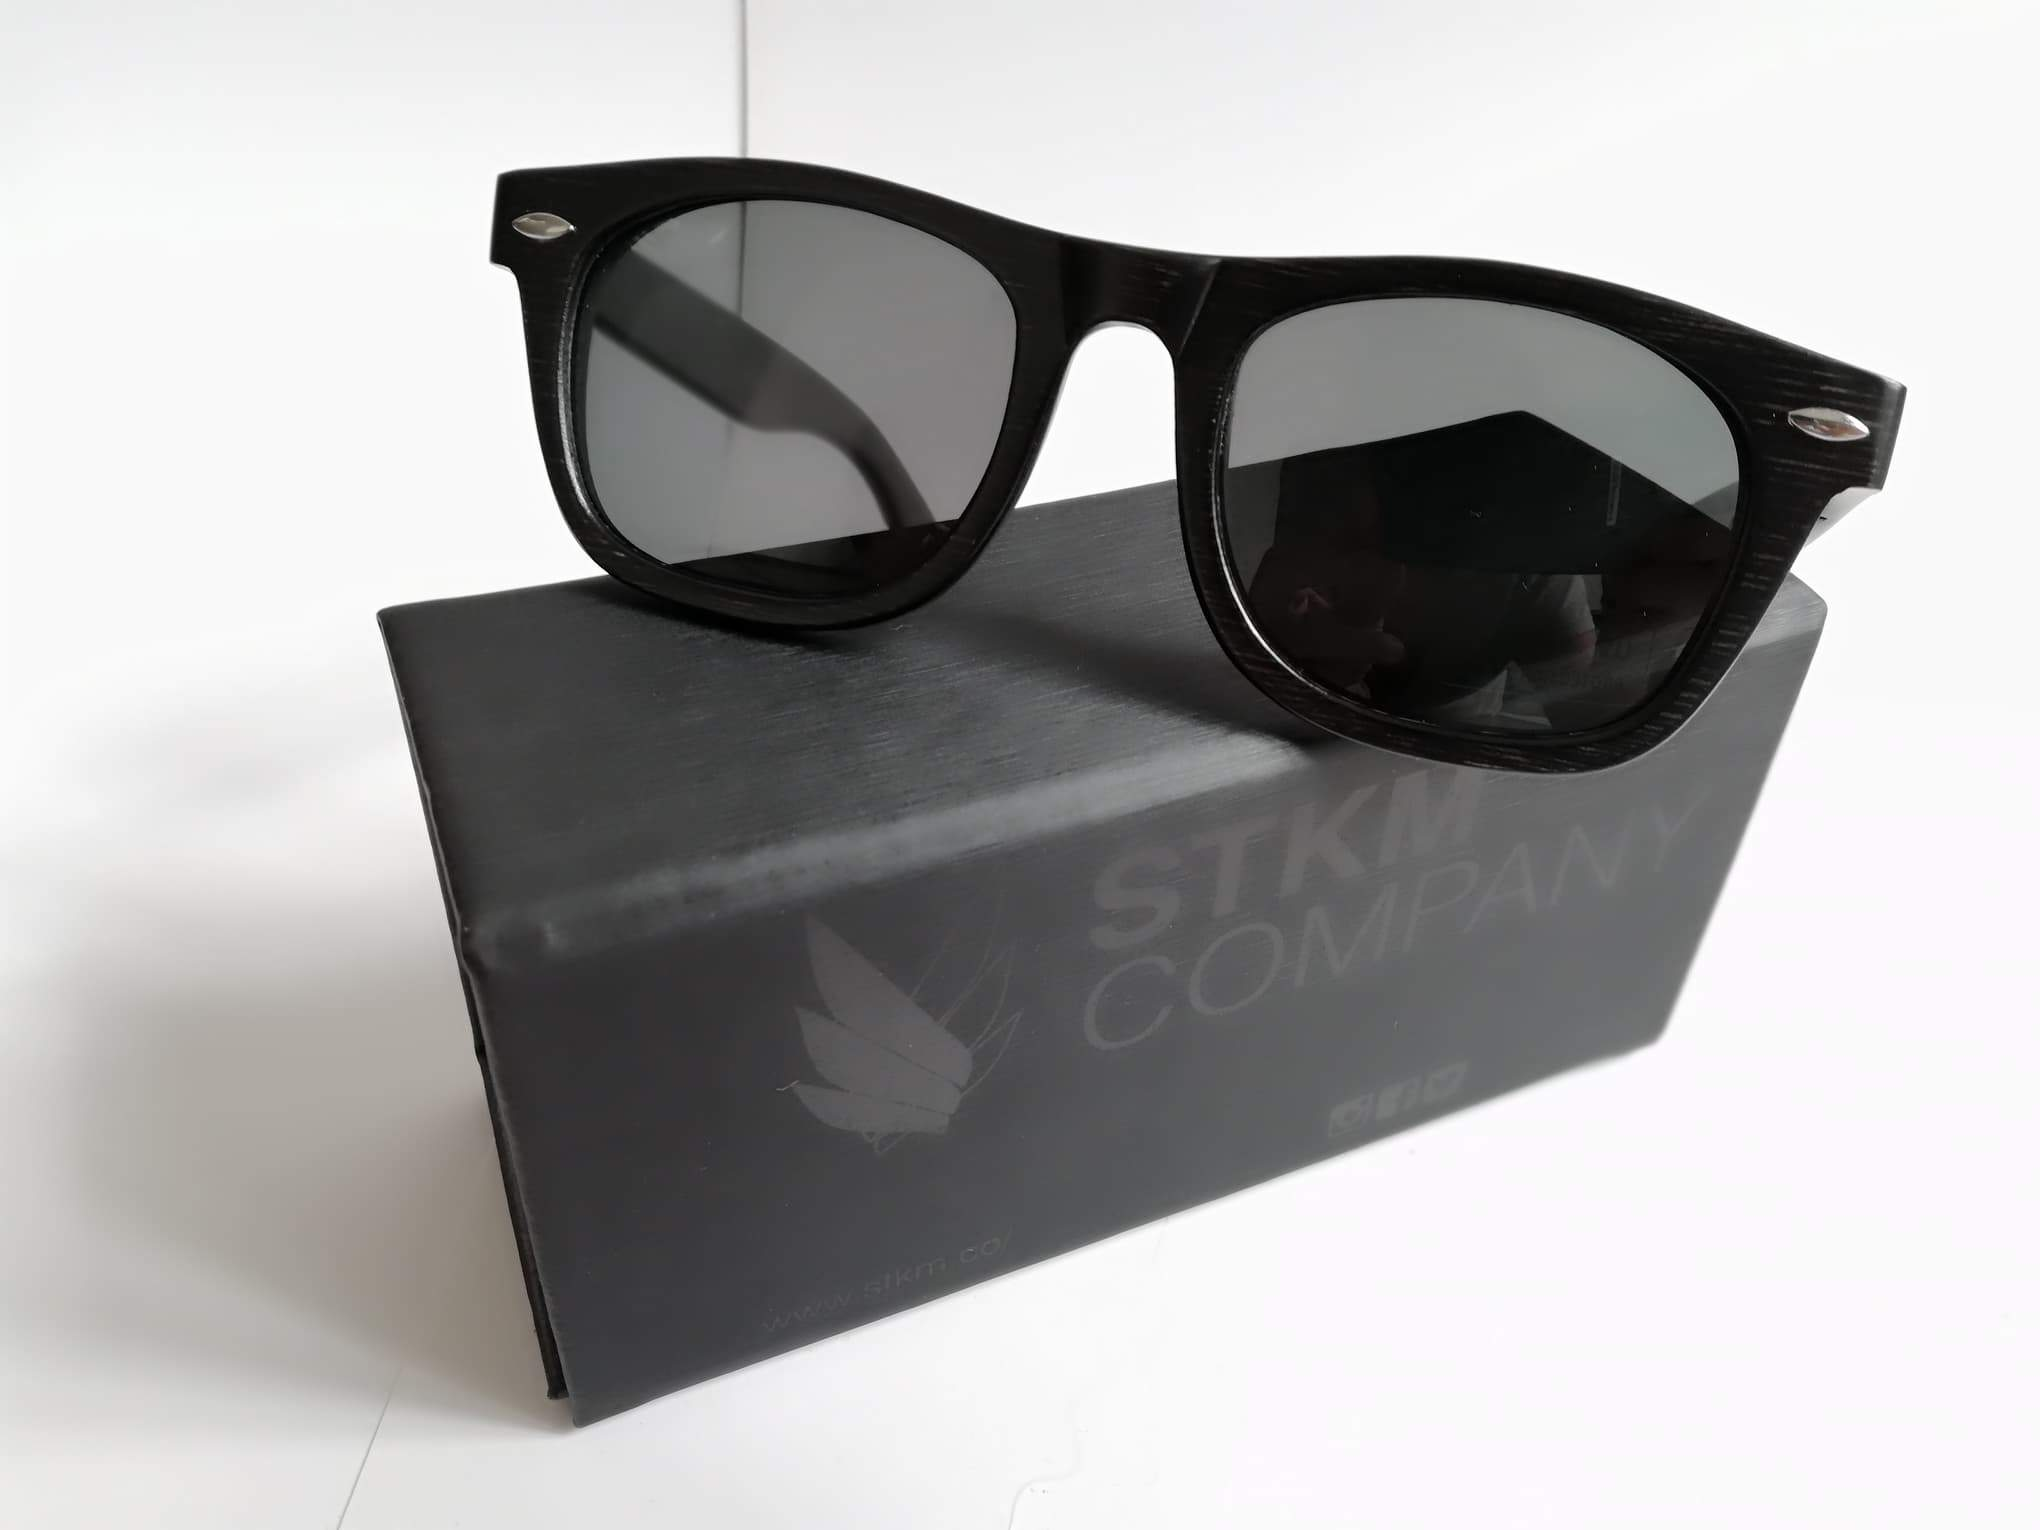 ac8427b6a9 Lentes de sol - Black bambu eco friendly